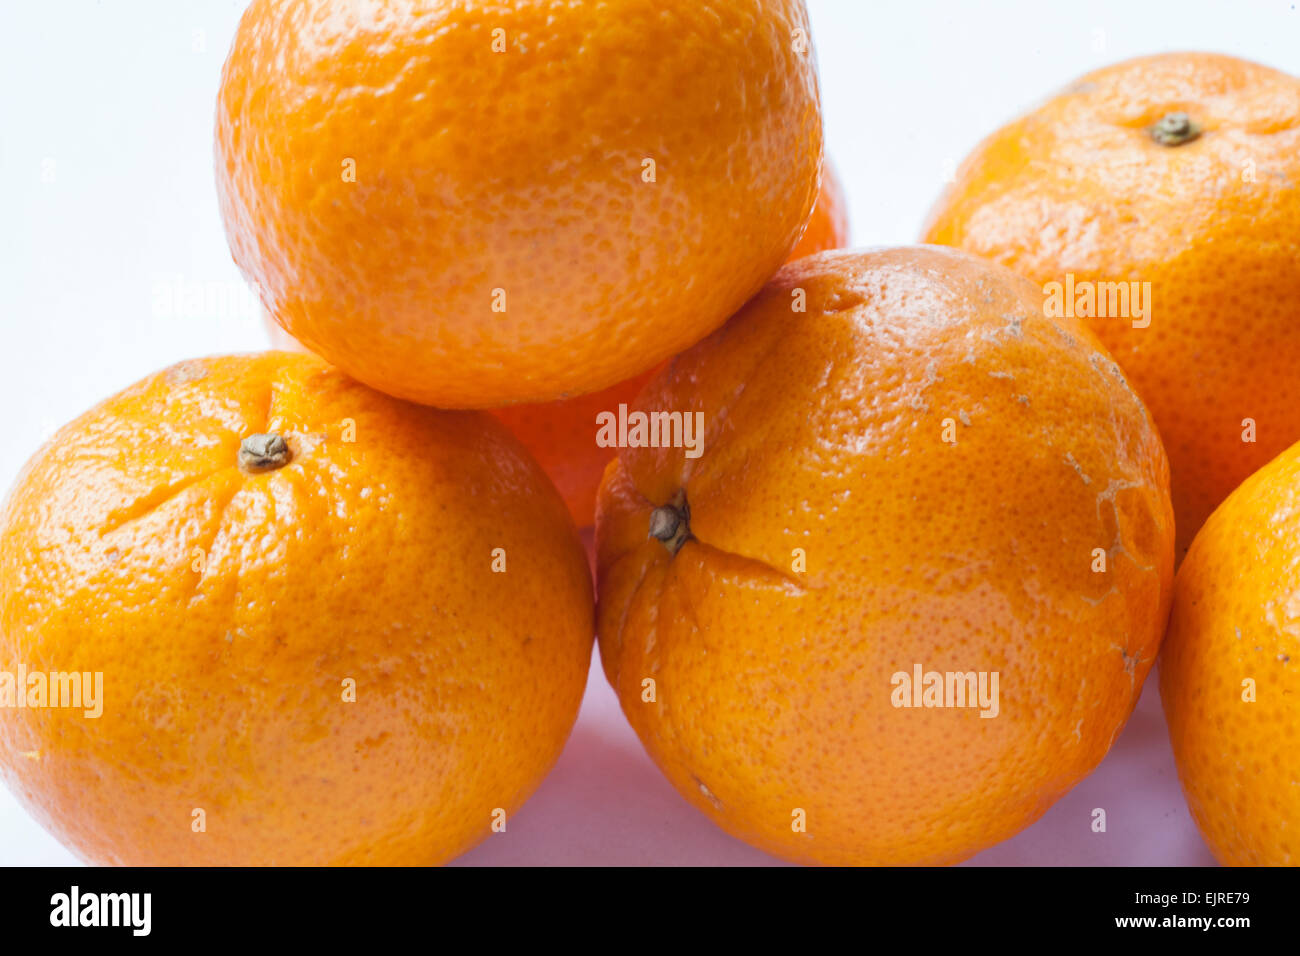 a group of fresh oranges on a clean white background - Stock Image